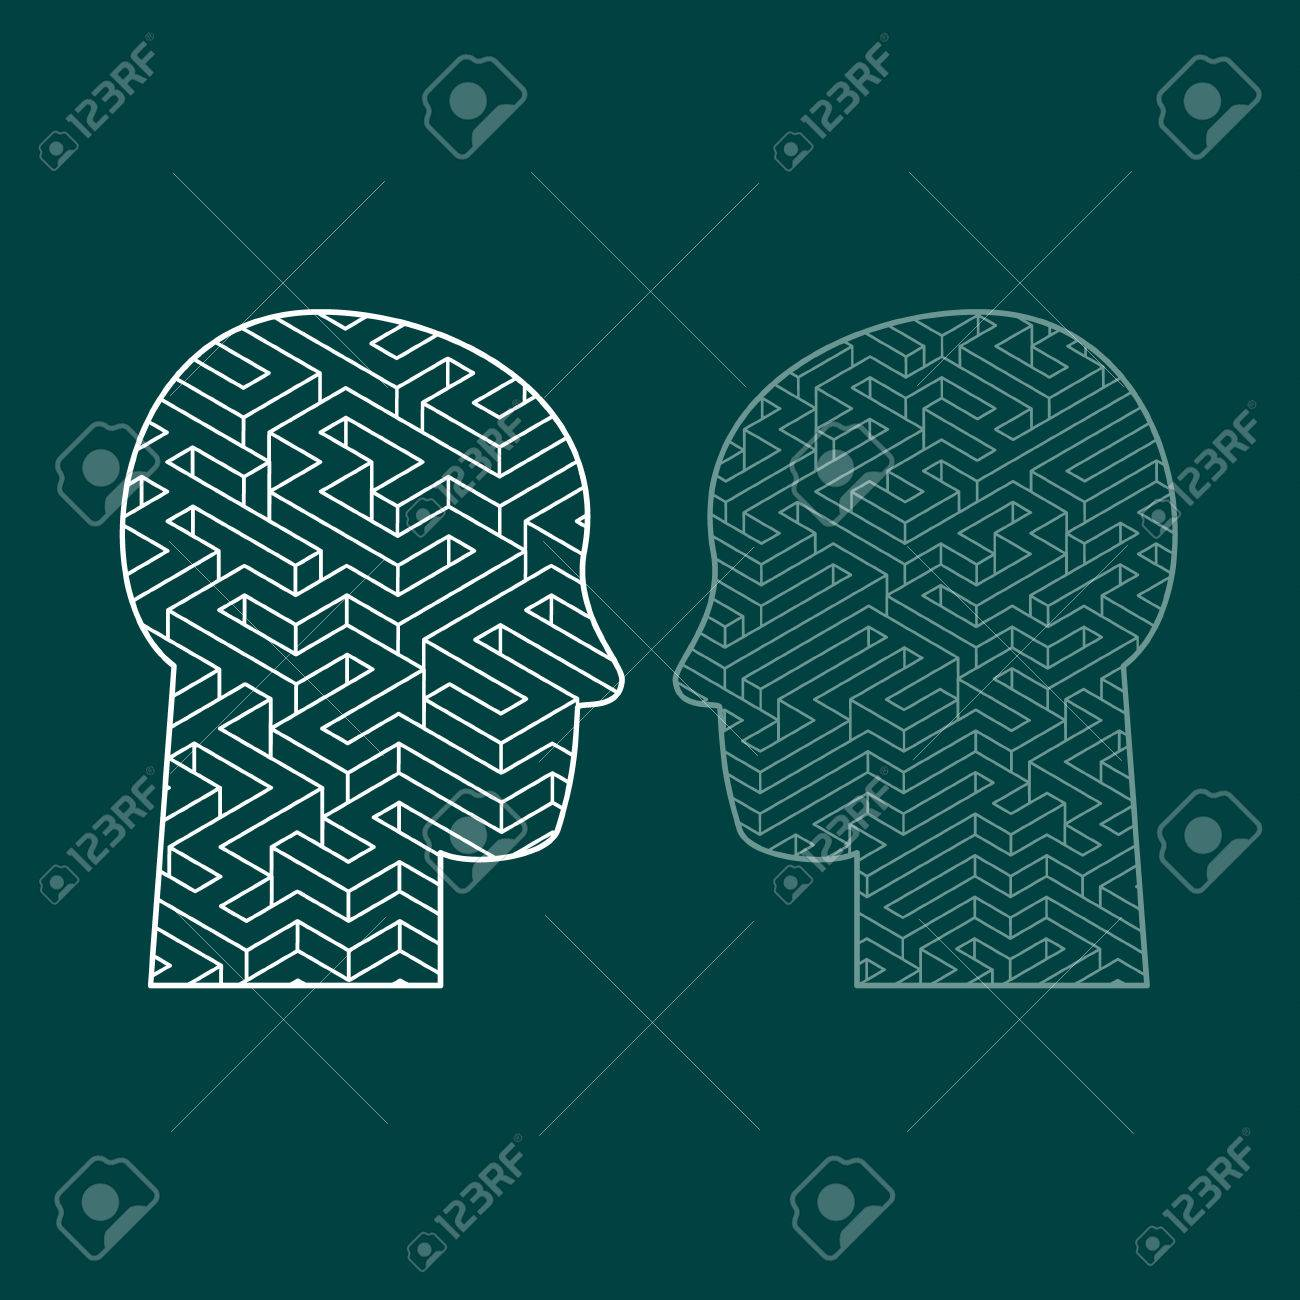 Human intelligence puzzle with a maze in the shape of a human head as a symbol of the complexity of brain thinking as a challenging problem to solve by medical doctors. Flat design vector illustration - 58203895